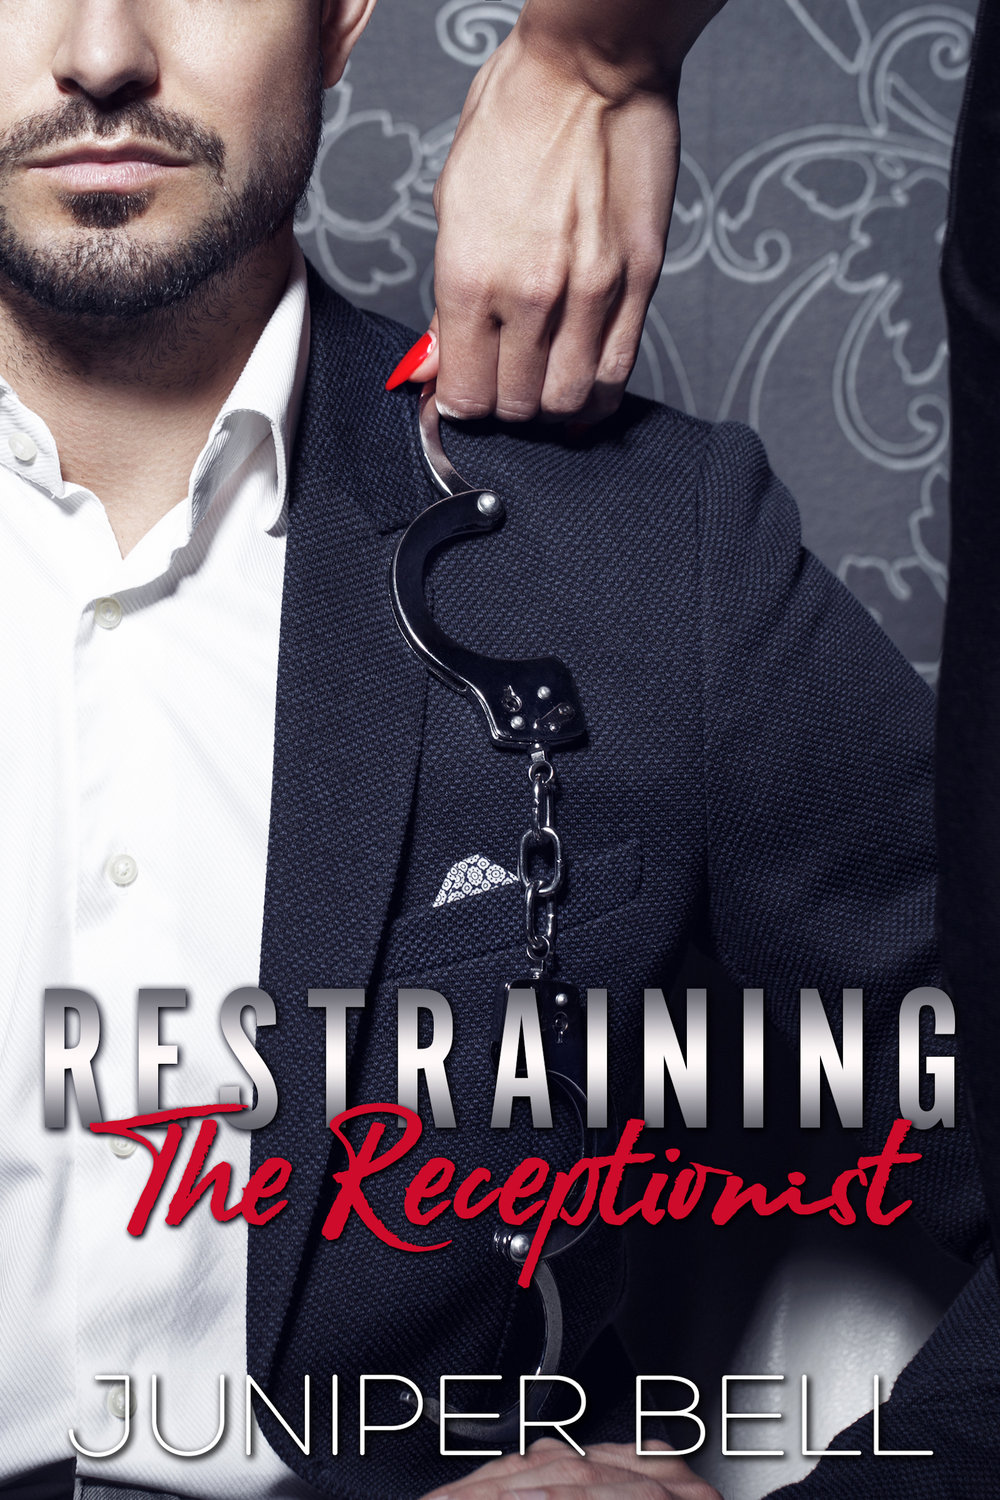 Restraining-the-Receptionist.jpg